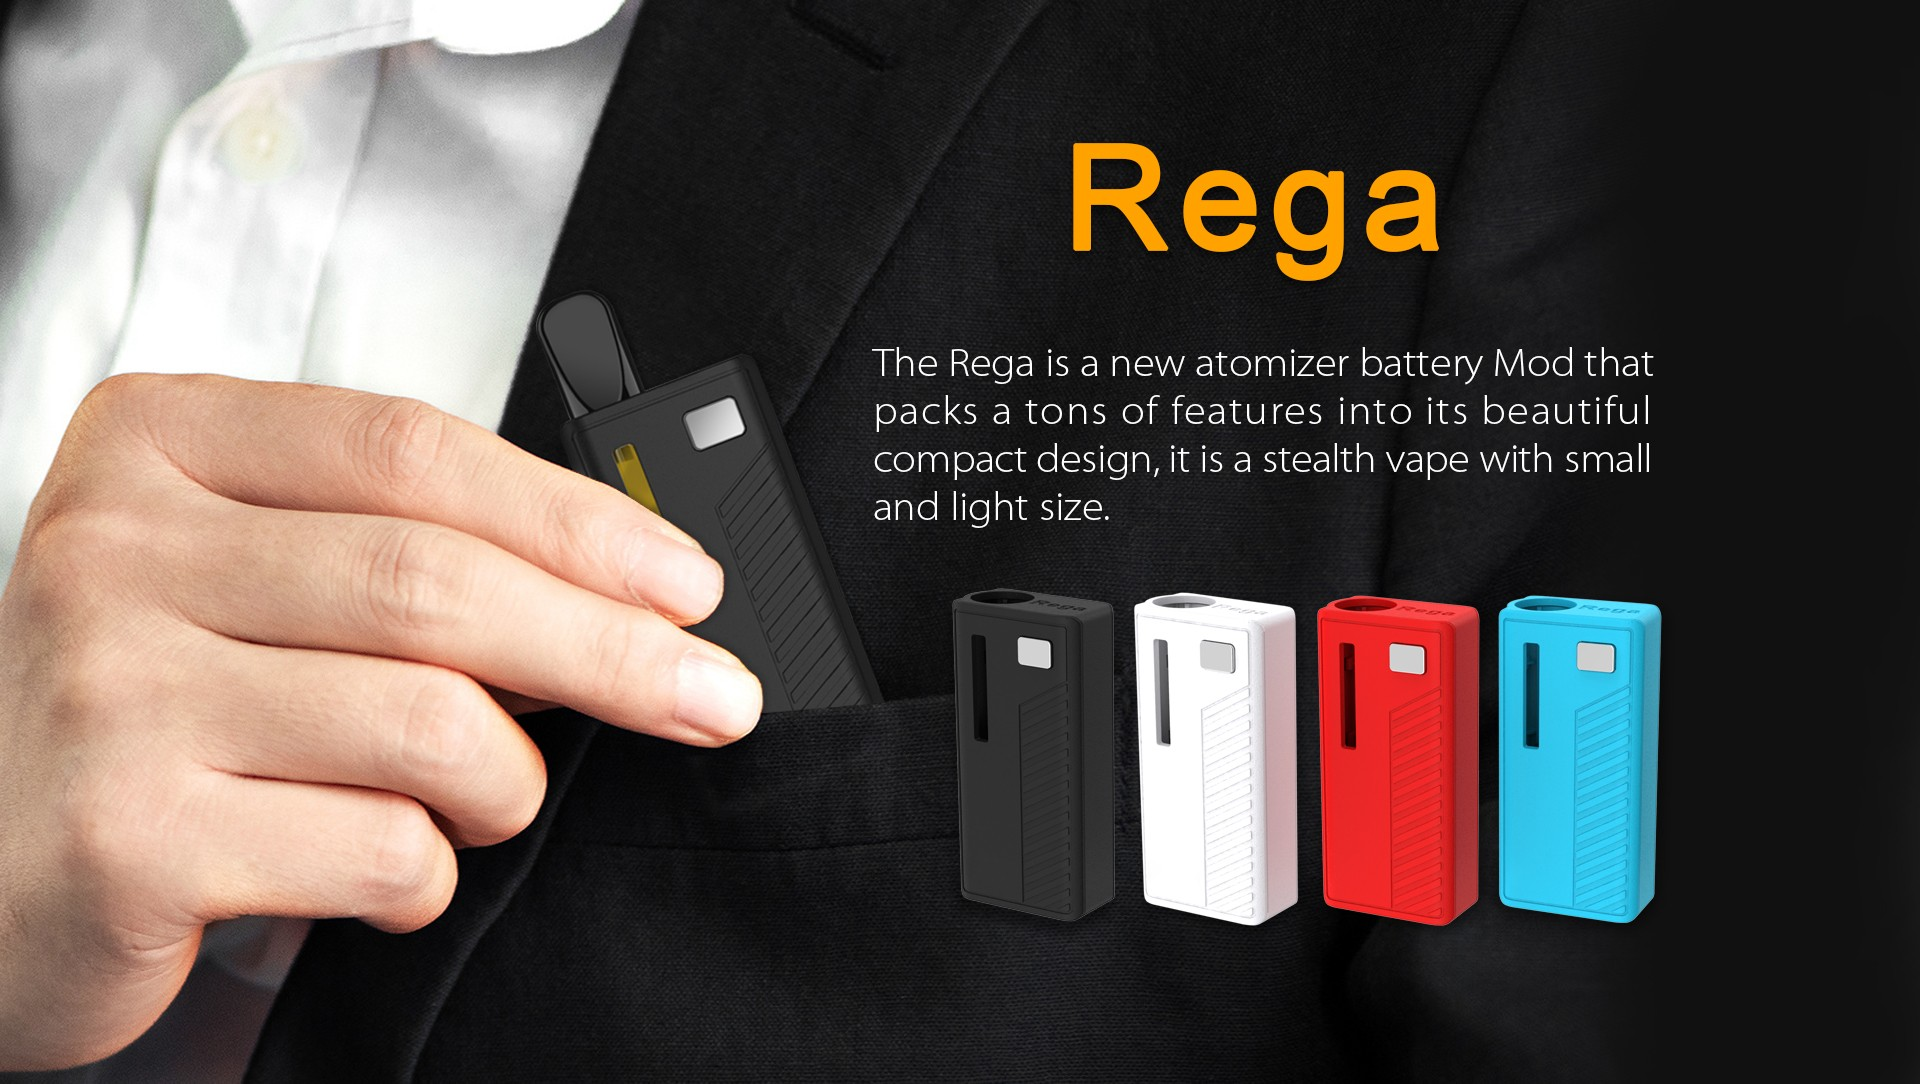 The Rega is a new atomizer battery Mod that packs a tons of features into its beautiful compact design, it is a stealth vape with small and light size.